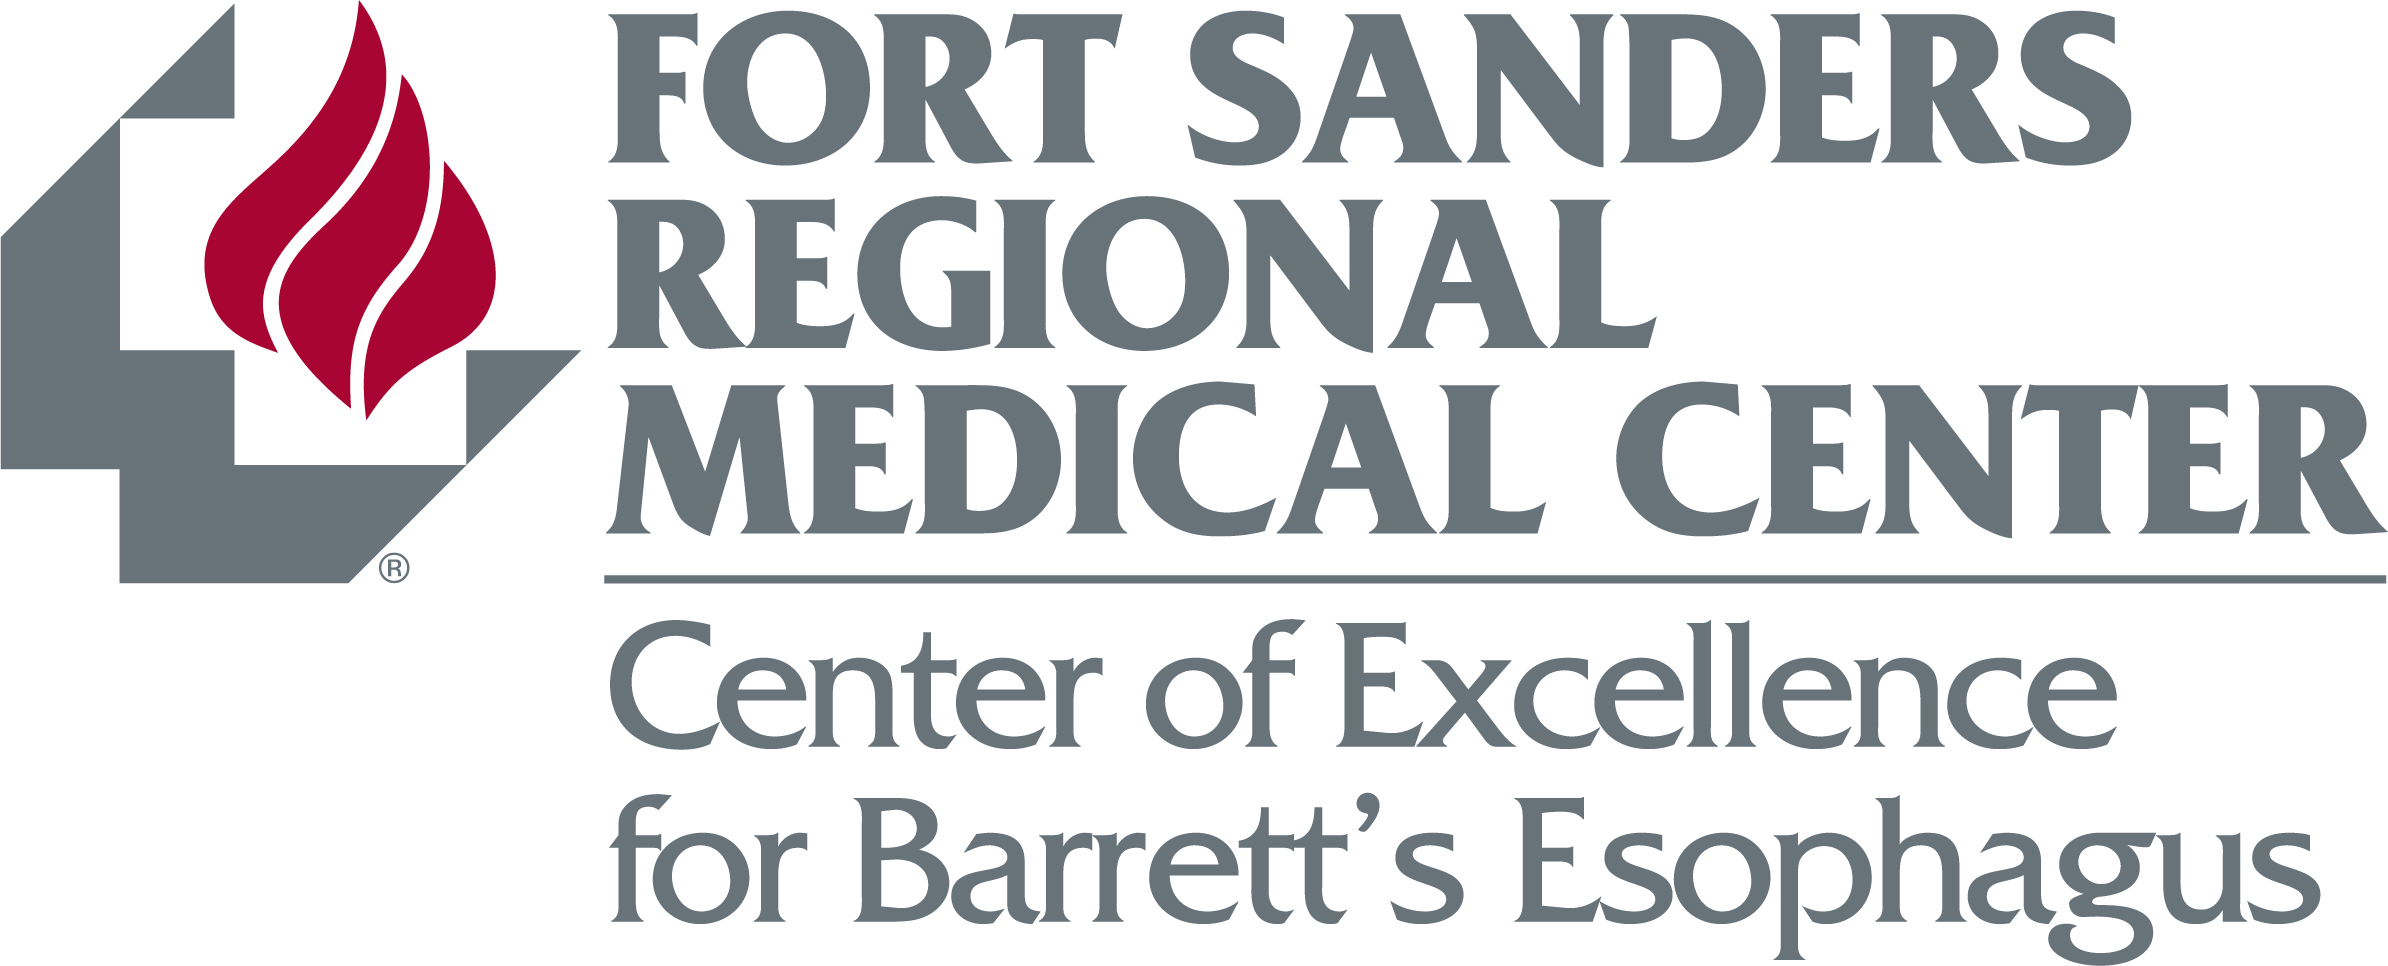 Center of Excellence for Barrett's Esophagus logo